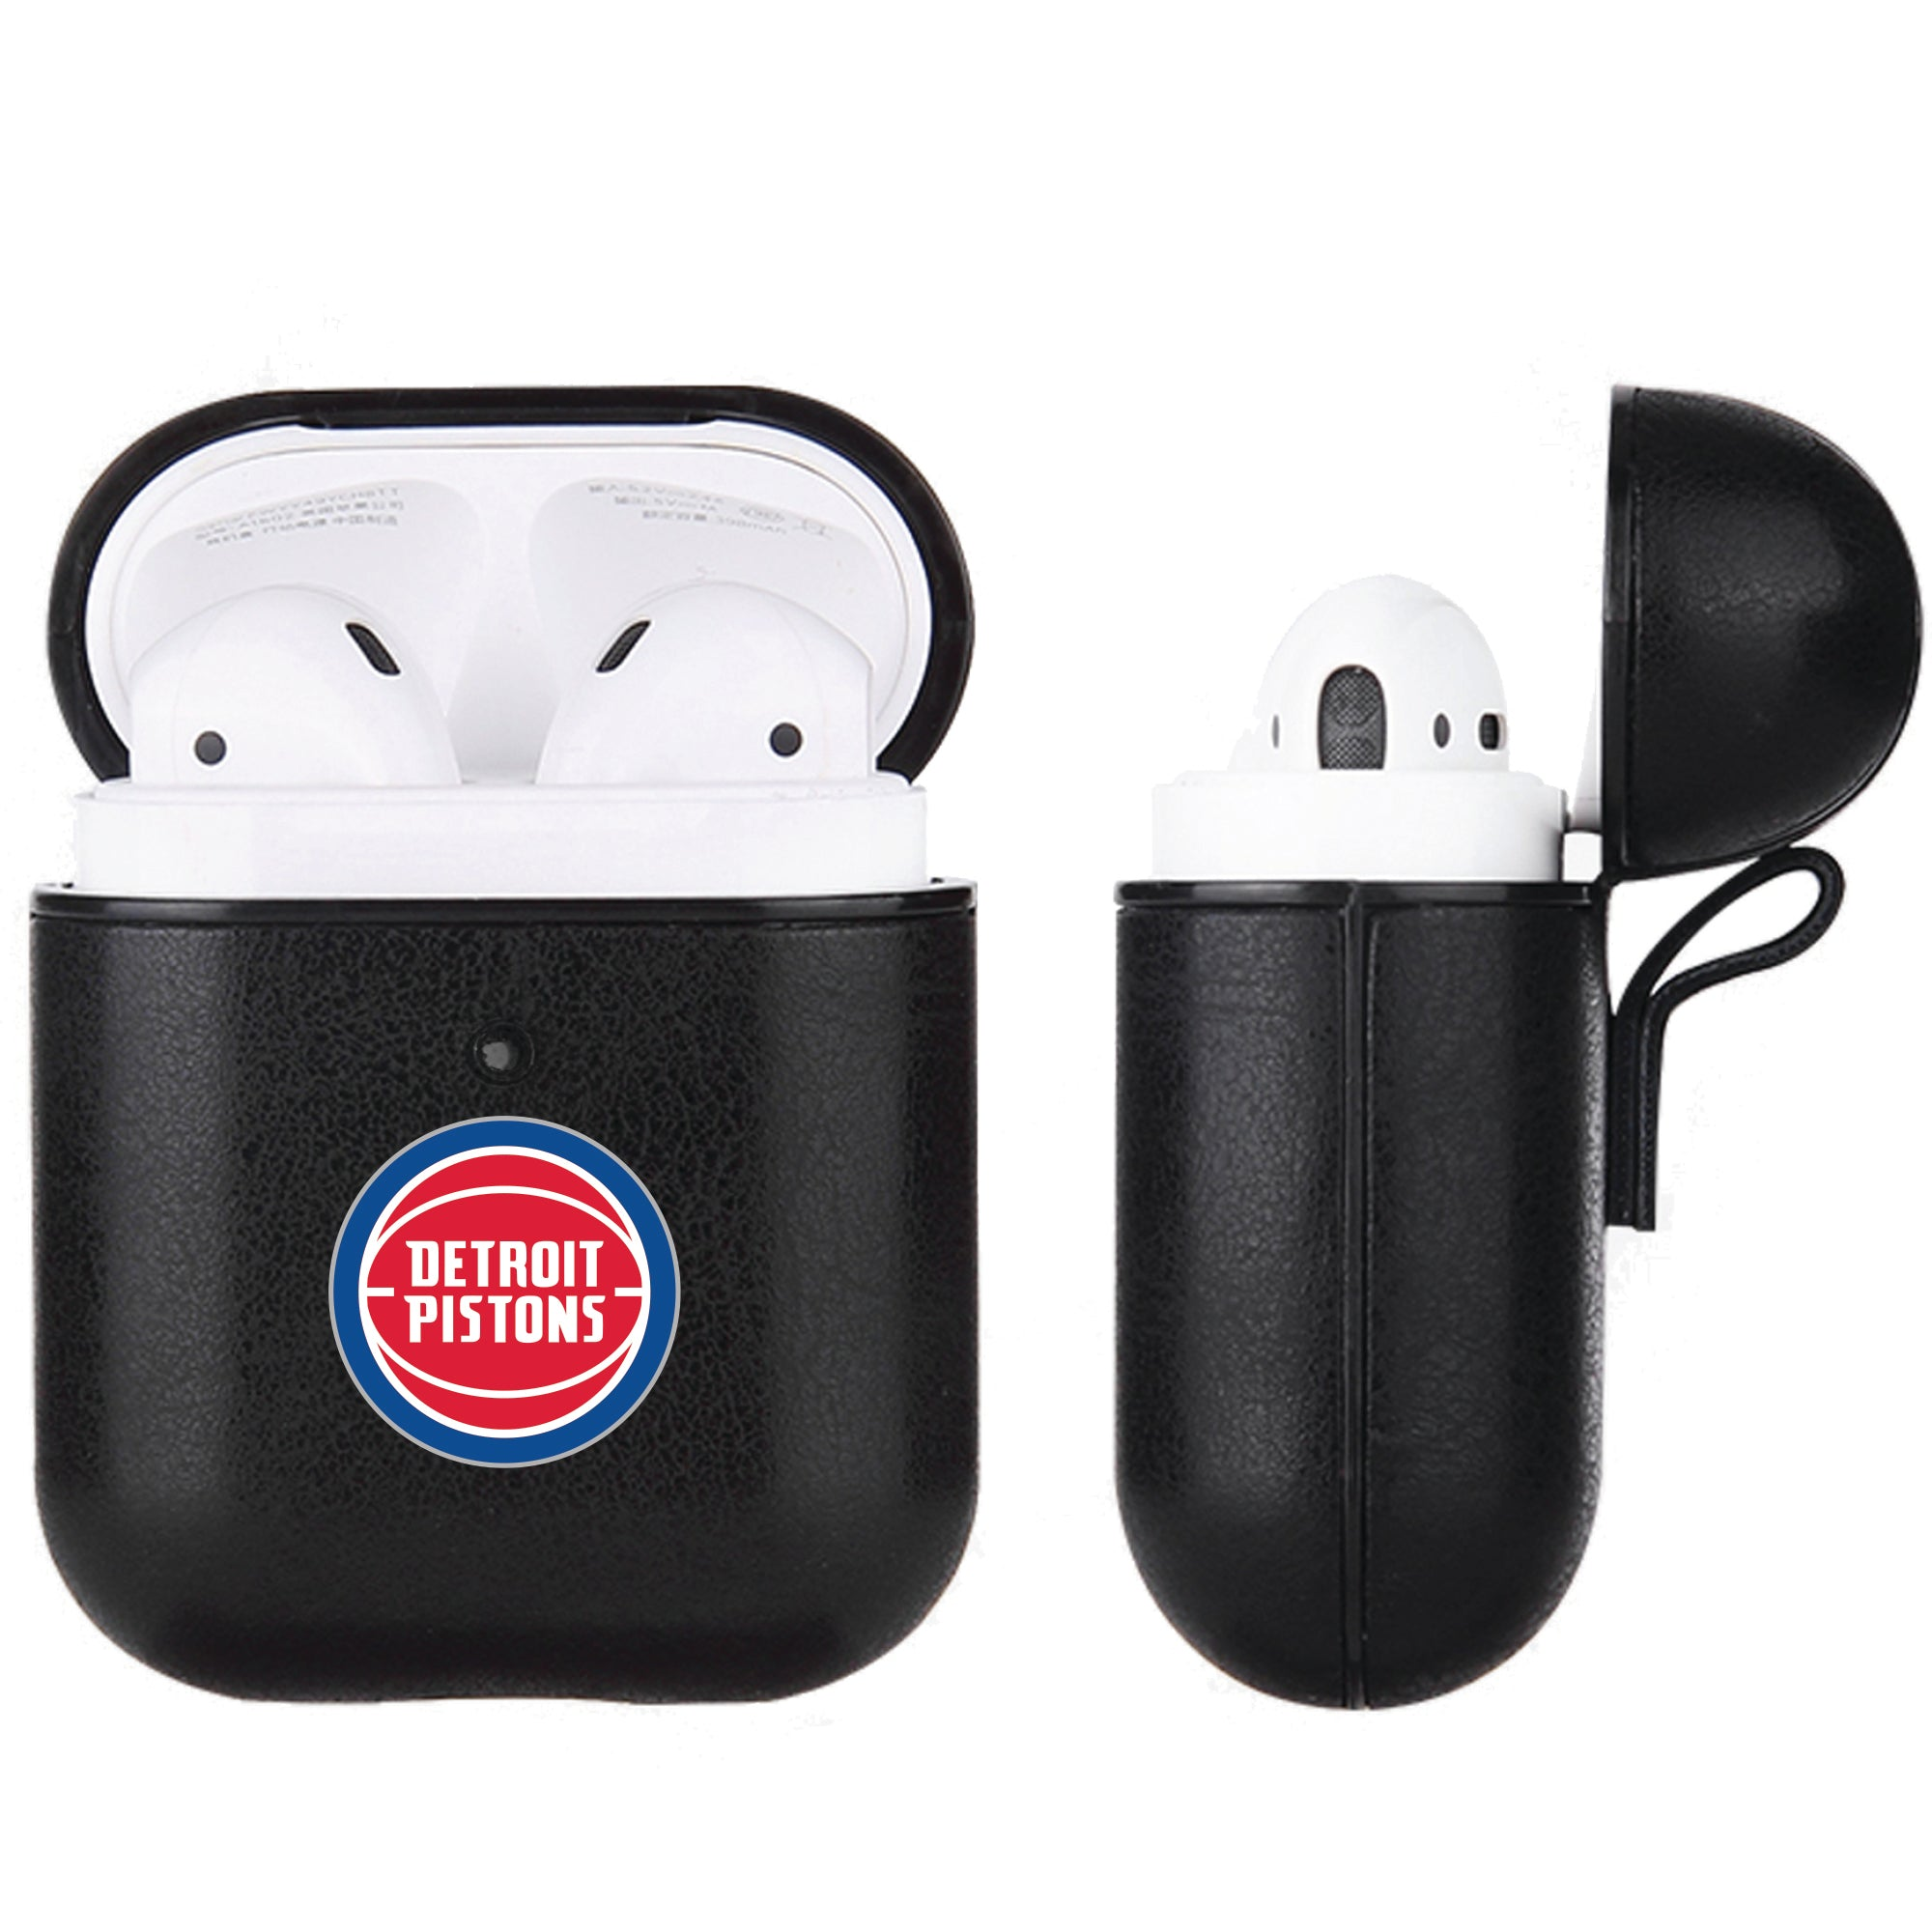 Detroit Pistons Black Apple Air Pod Leather Case